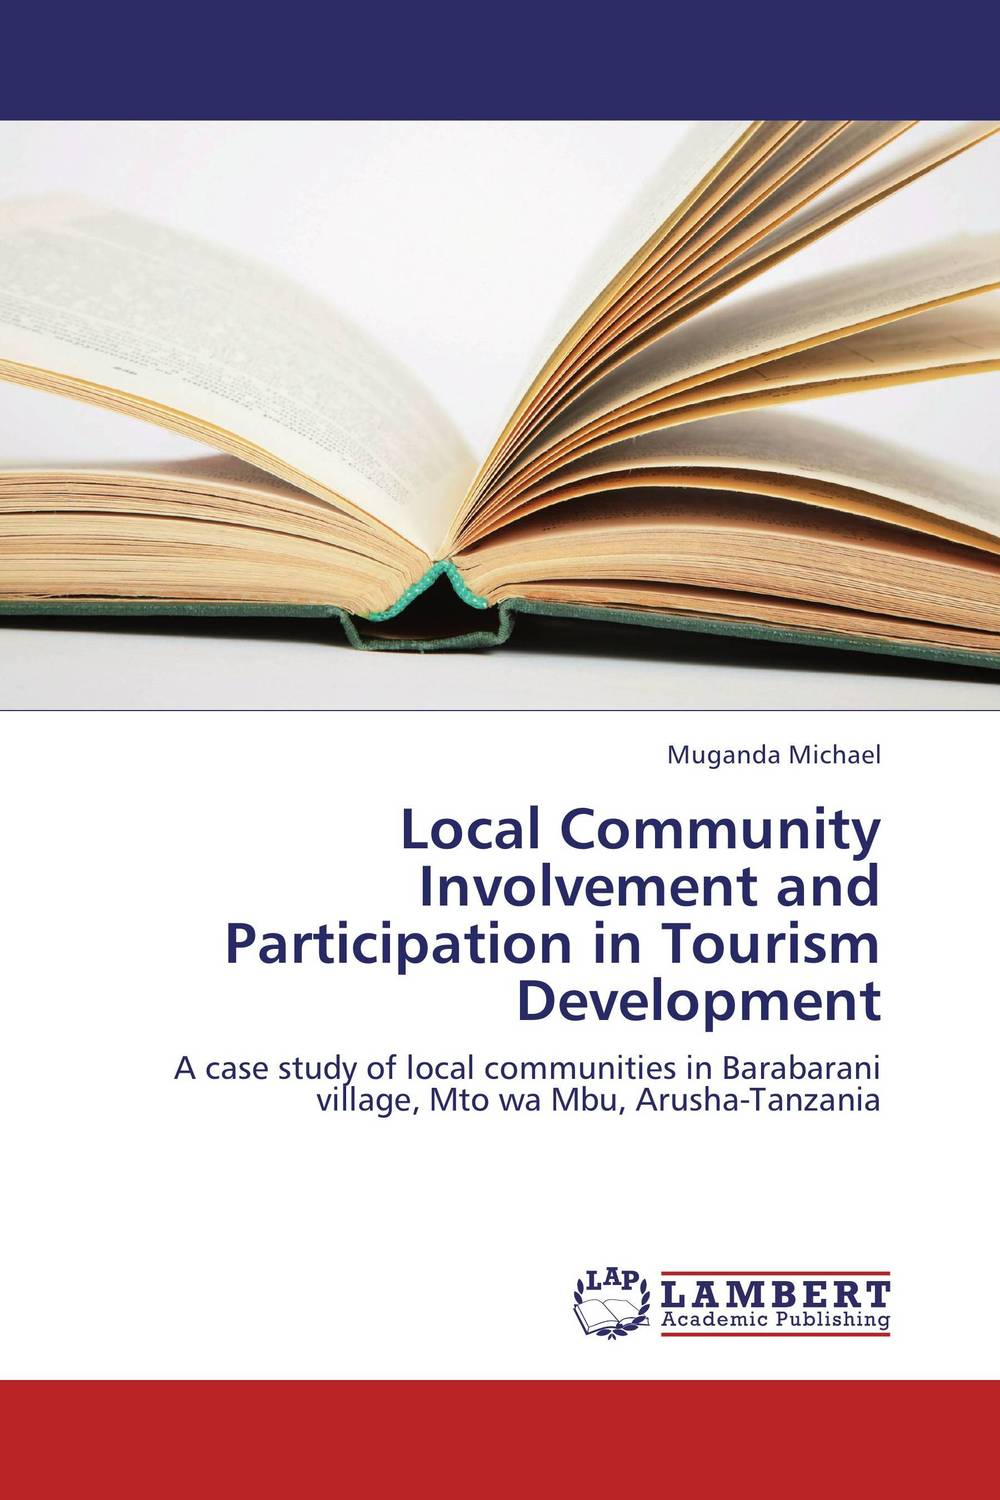 Local Community Involvement and Participation in Tourism Development